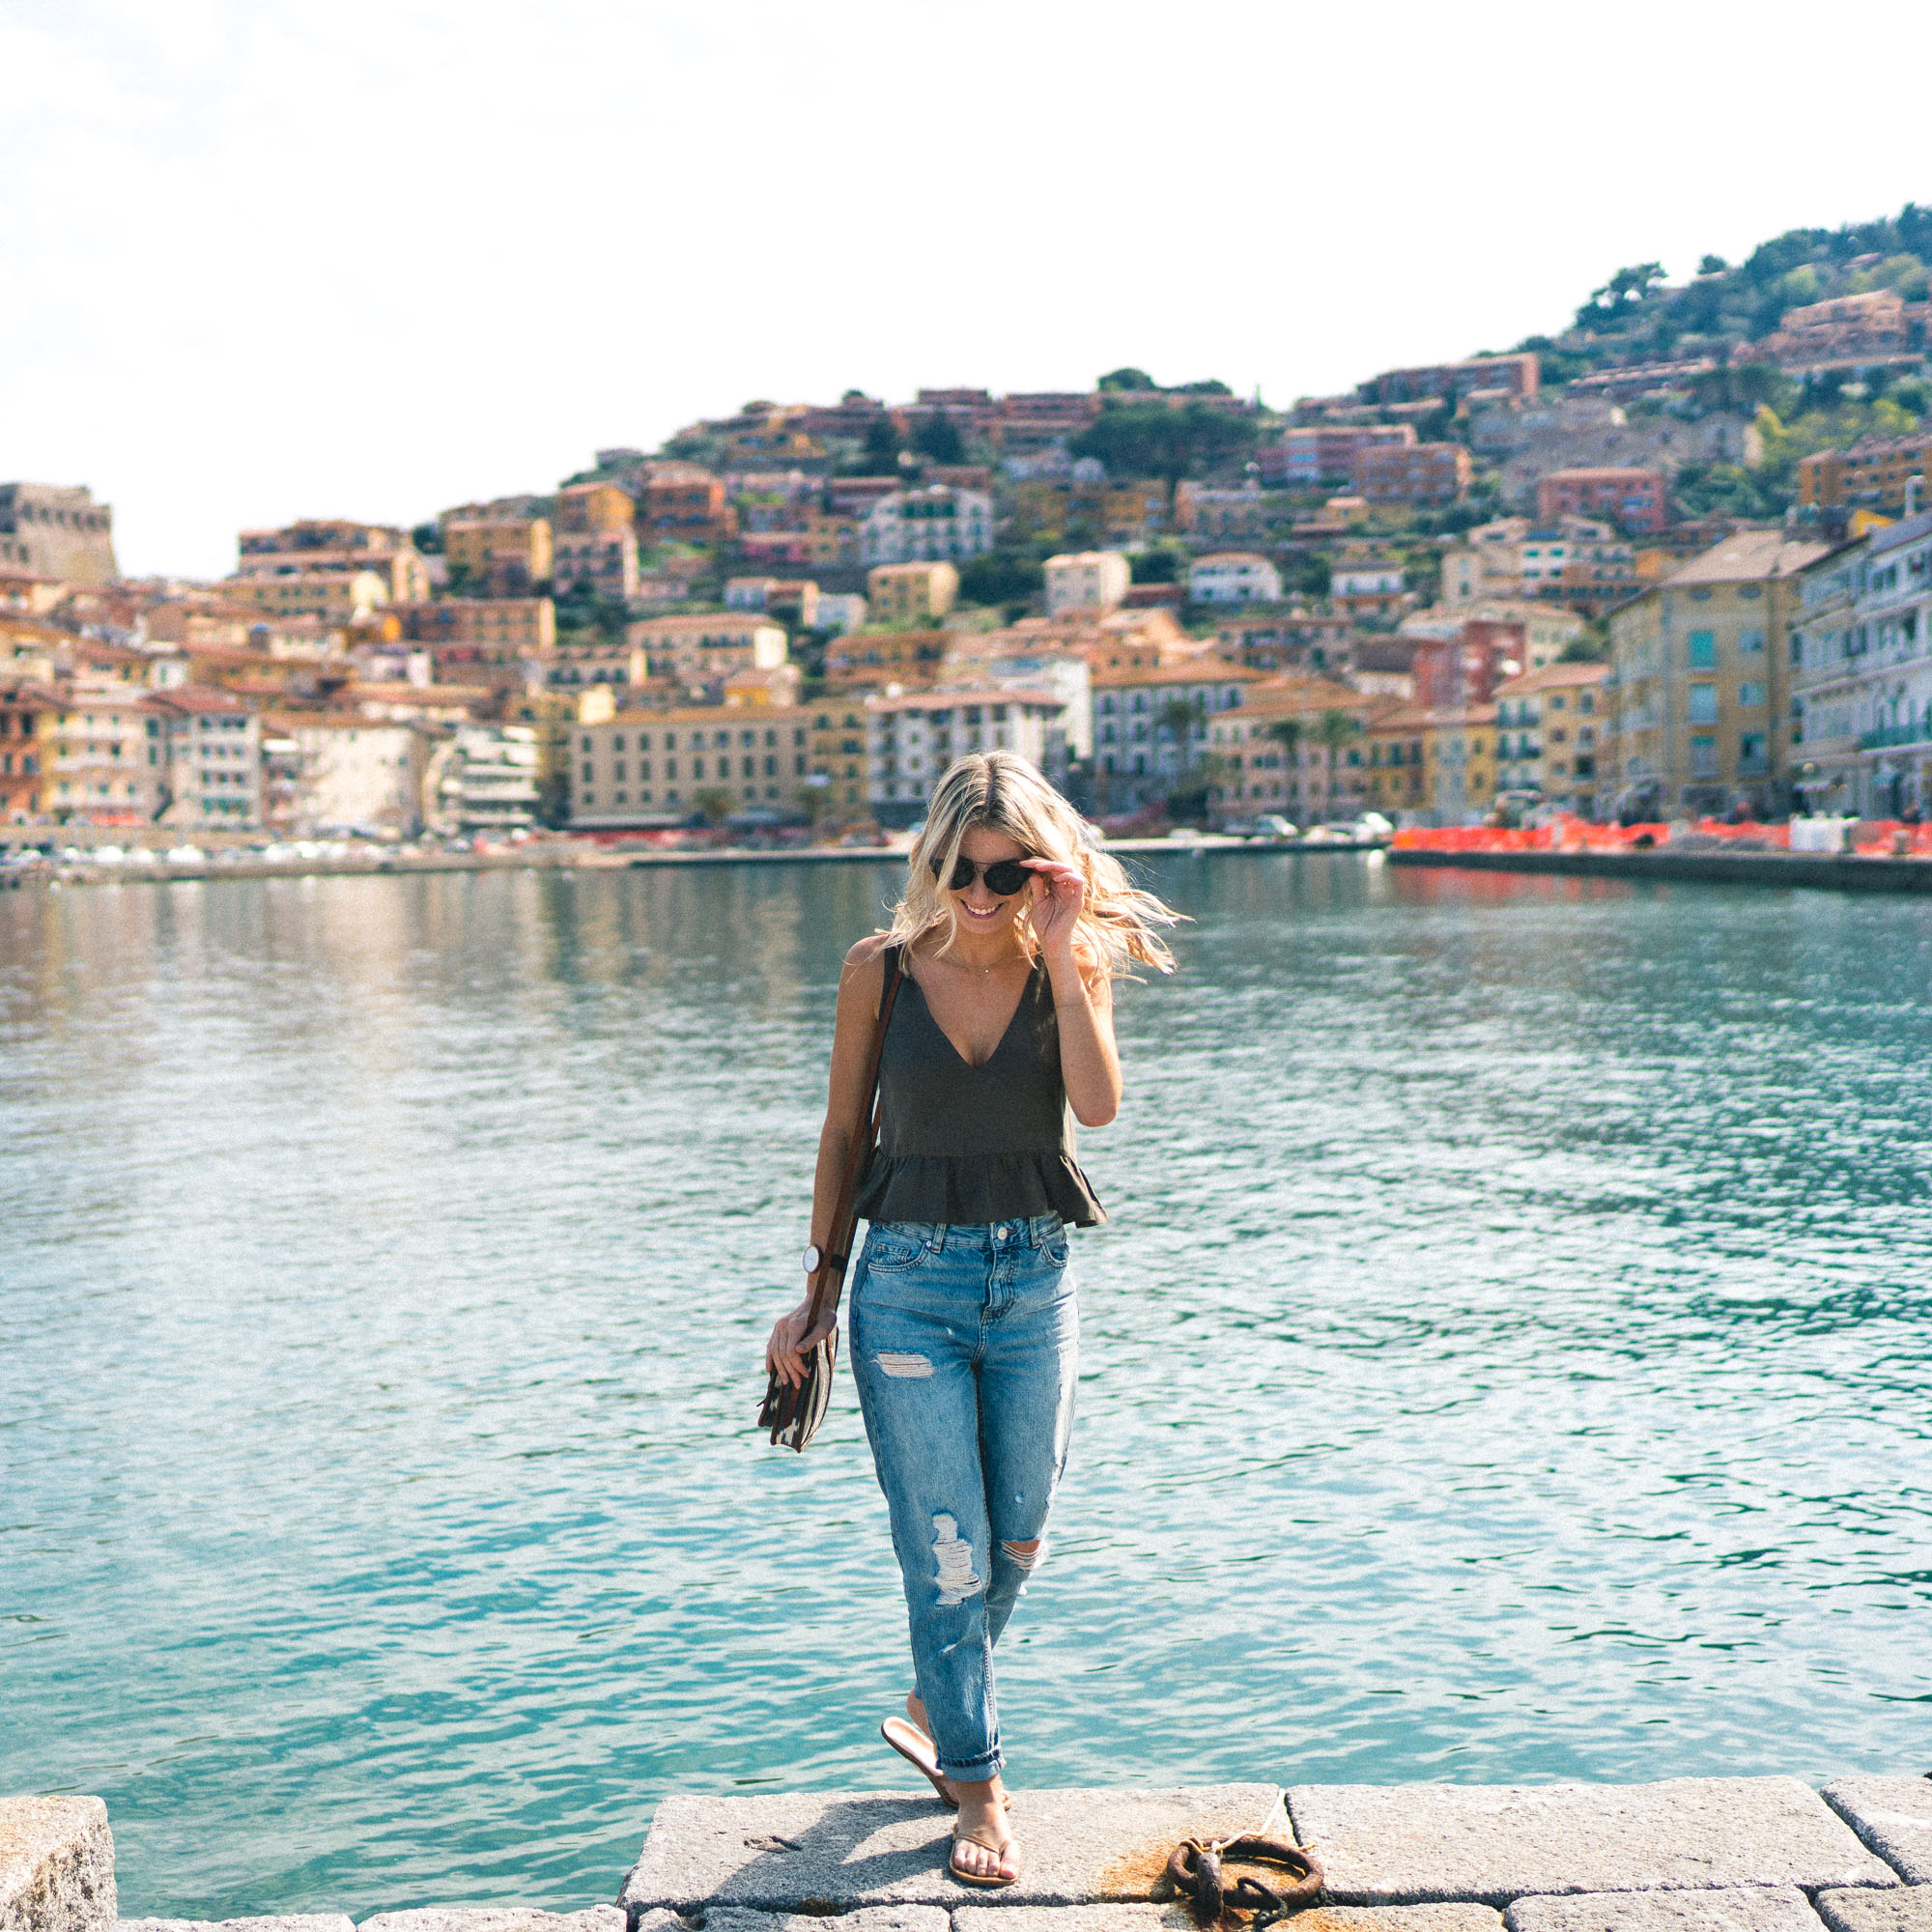 Porto Santo Stefano seaside town in southern Tuscany, Italy